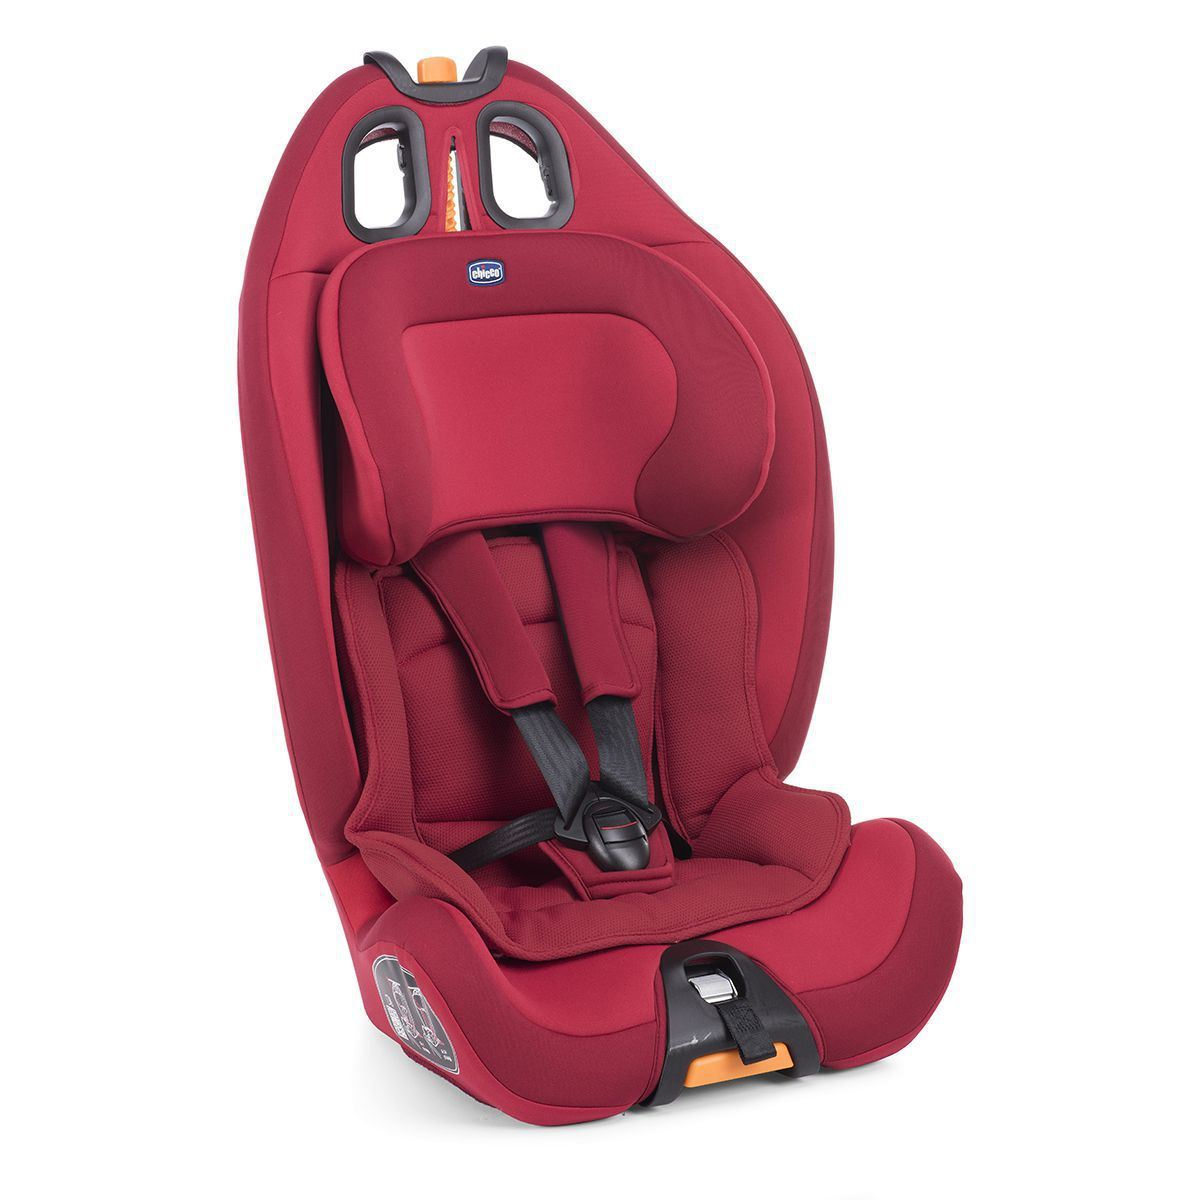 Silla de auto Gro-up123 Chicco Red passion